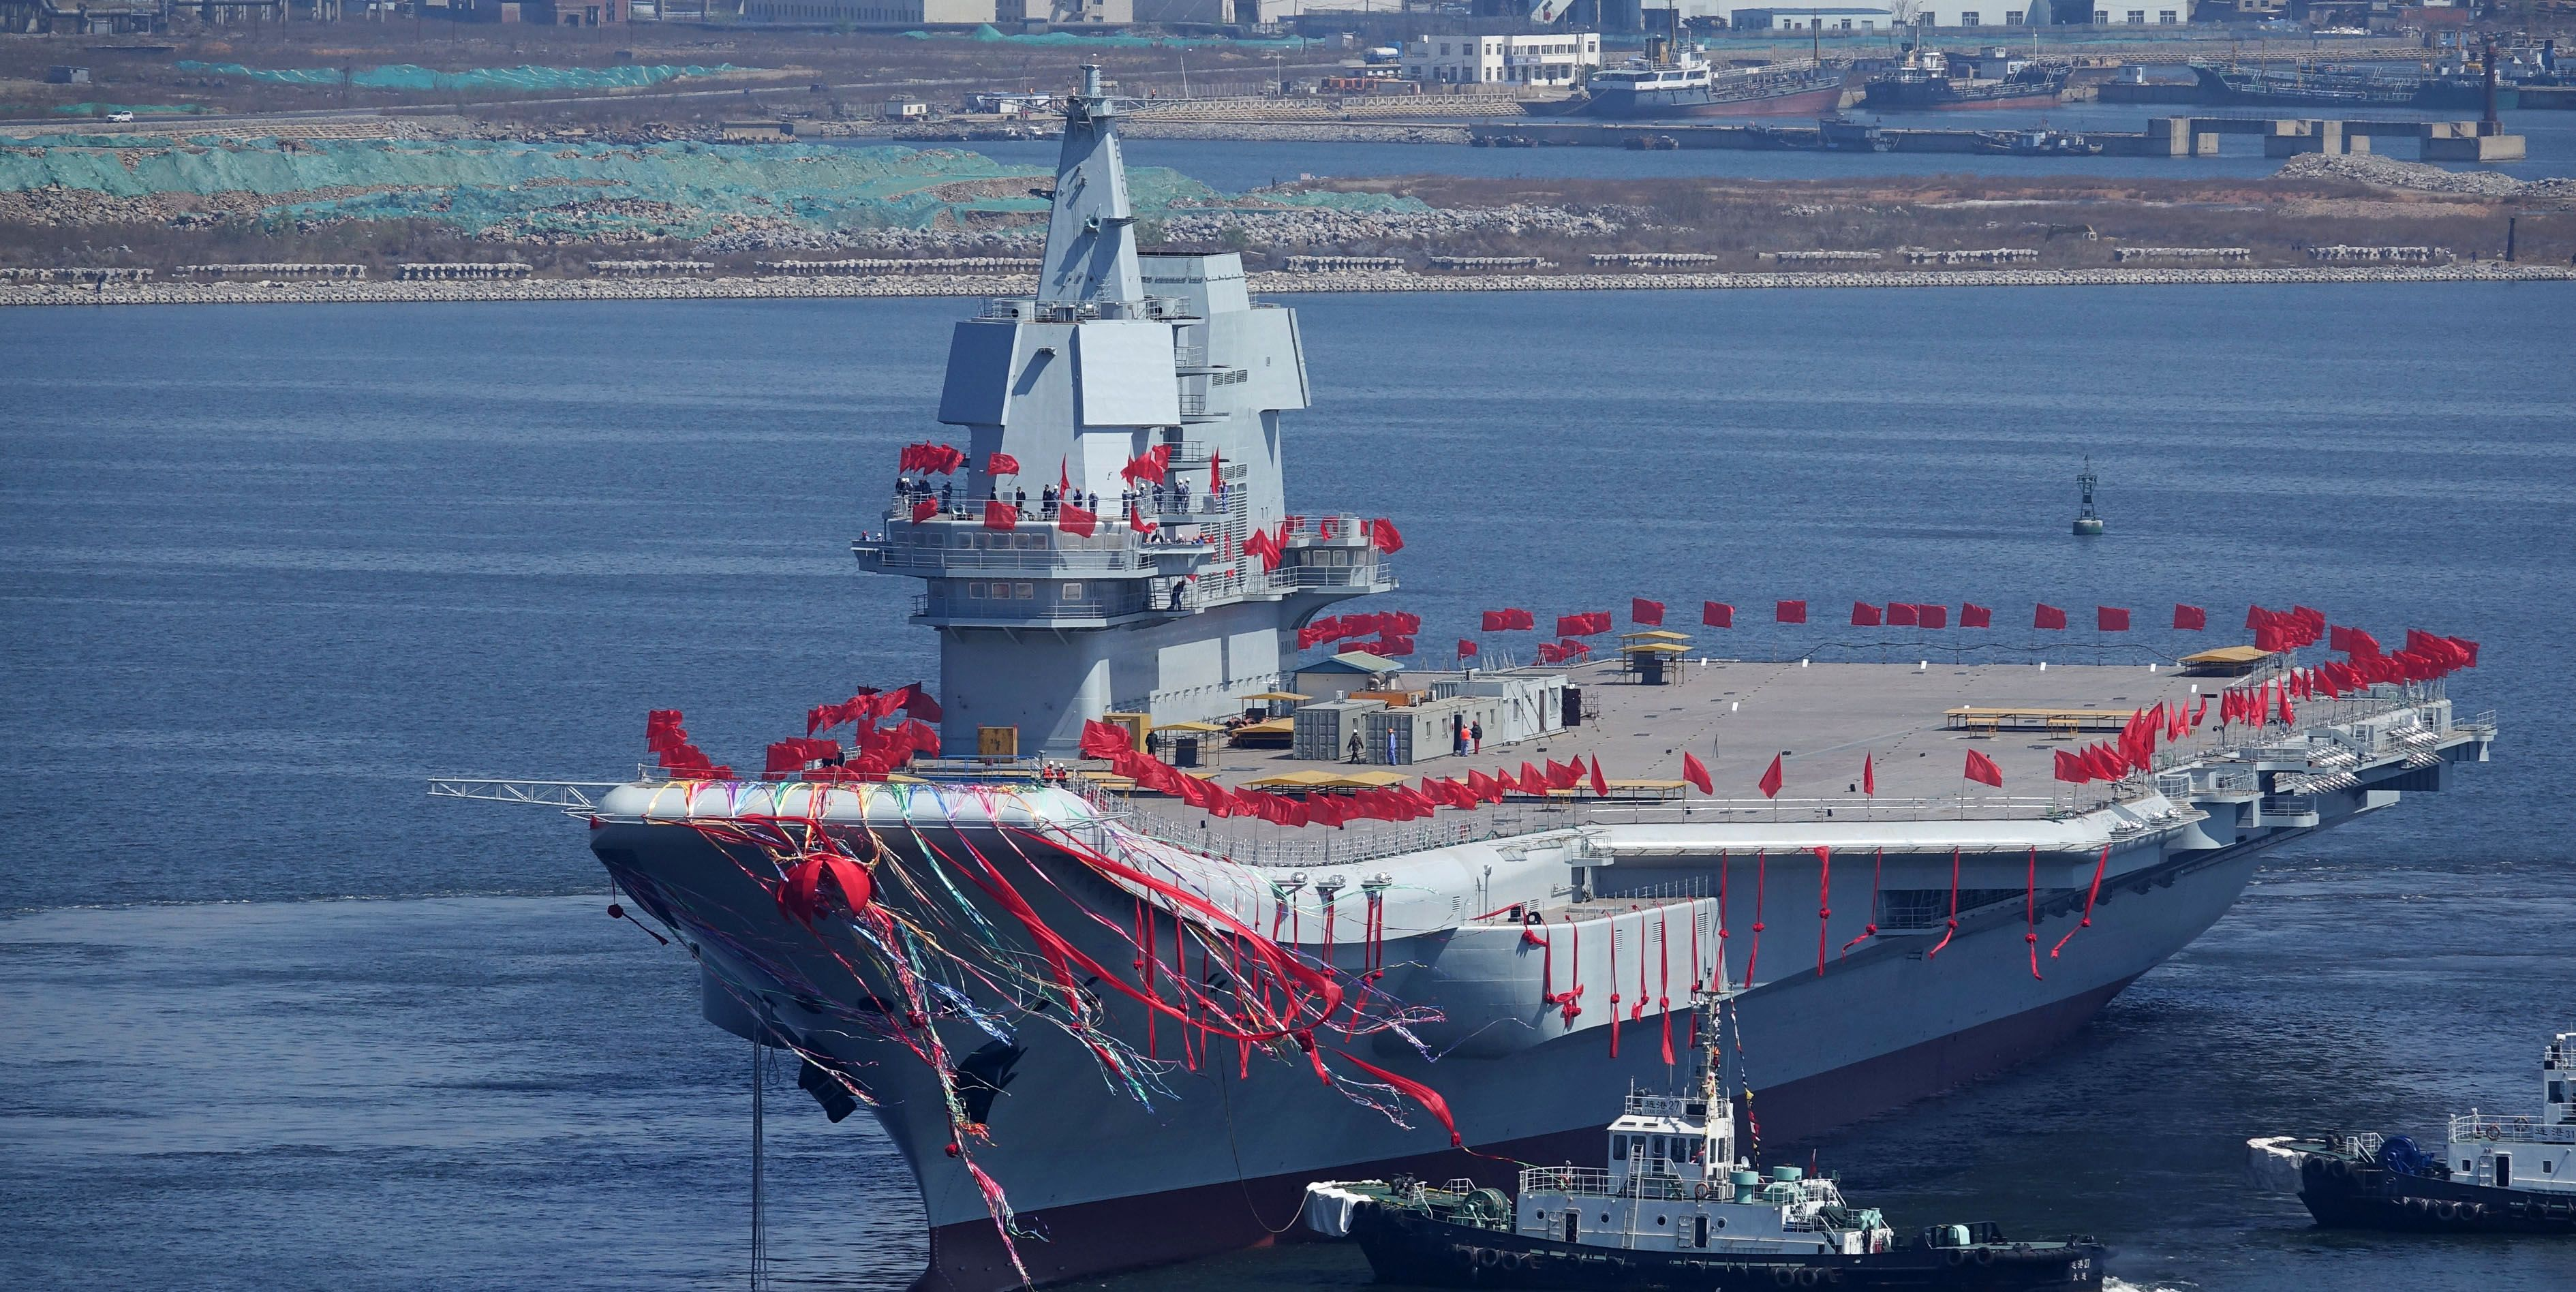 China's Second Aircraft Carrier Is Its Most Crucial Yet (popularmechanics.com)